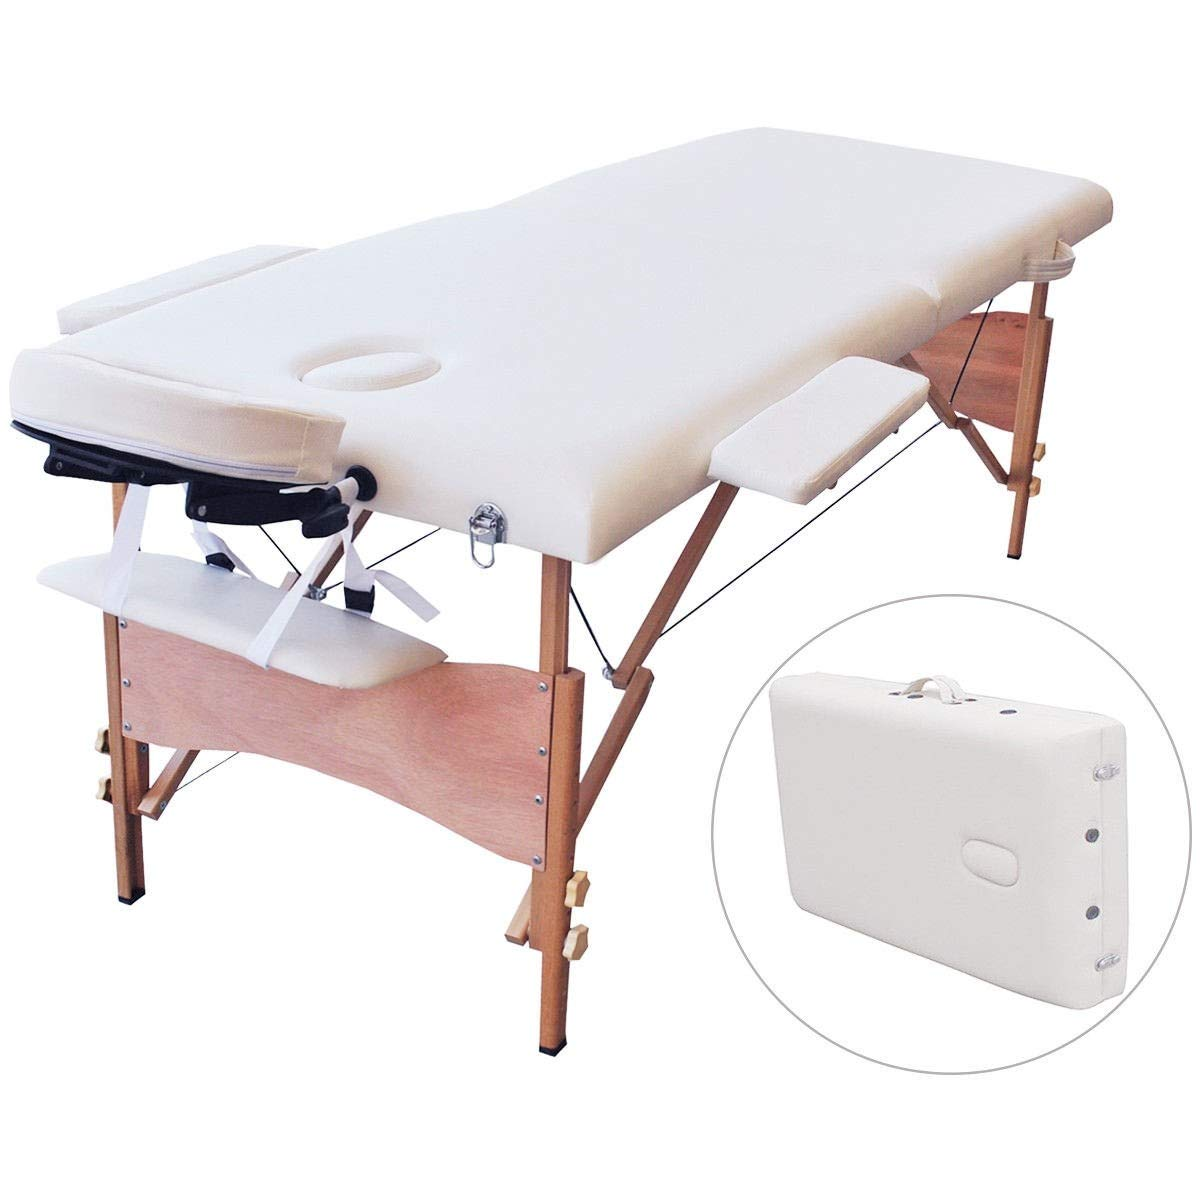 Portable Massage Table, BestComfort Height Adjustable Massage Table 2 Folding Massage Bed Spa Bed Facial Cradle Salon Bed With Carry Case